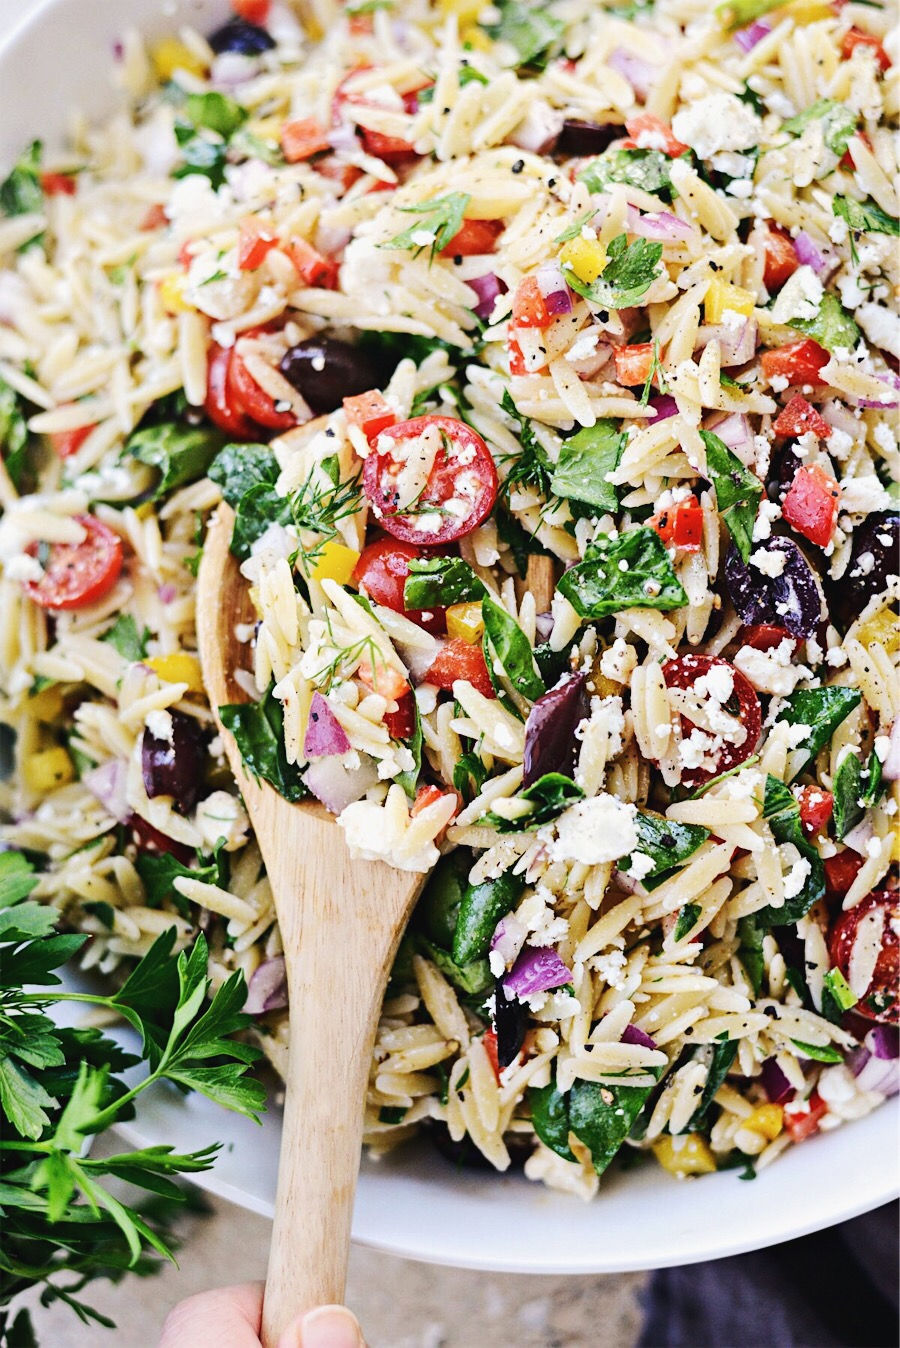 Greek Orzo Salad l SimplyScratch.com #greek #orzo #pasta #salad #spinach #feta #picnic